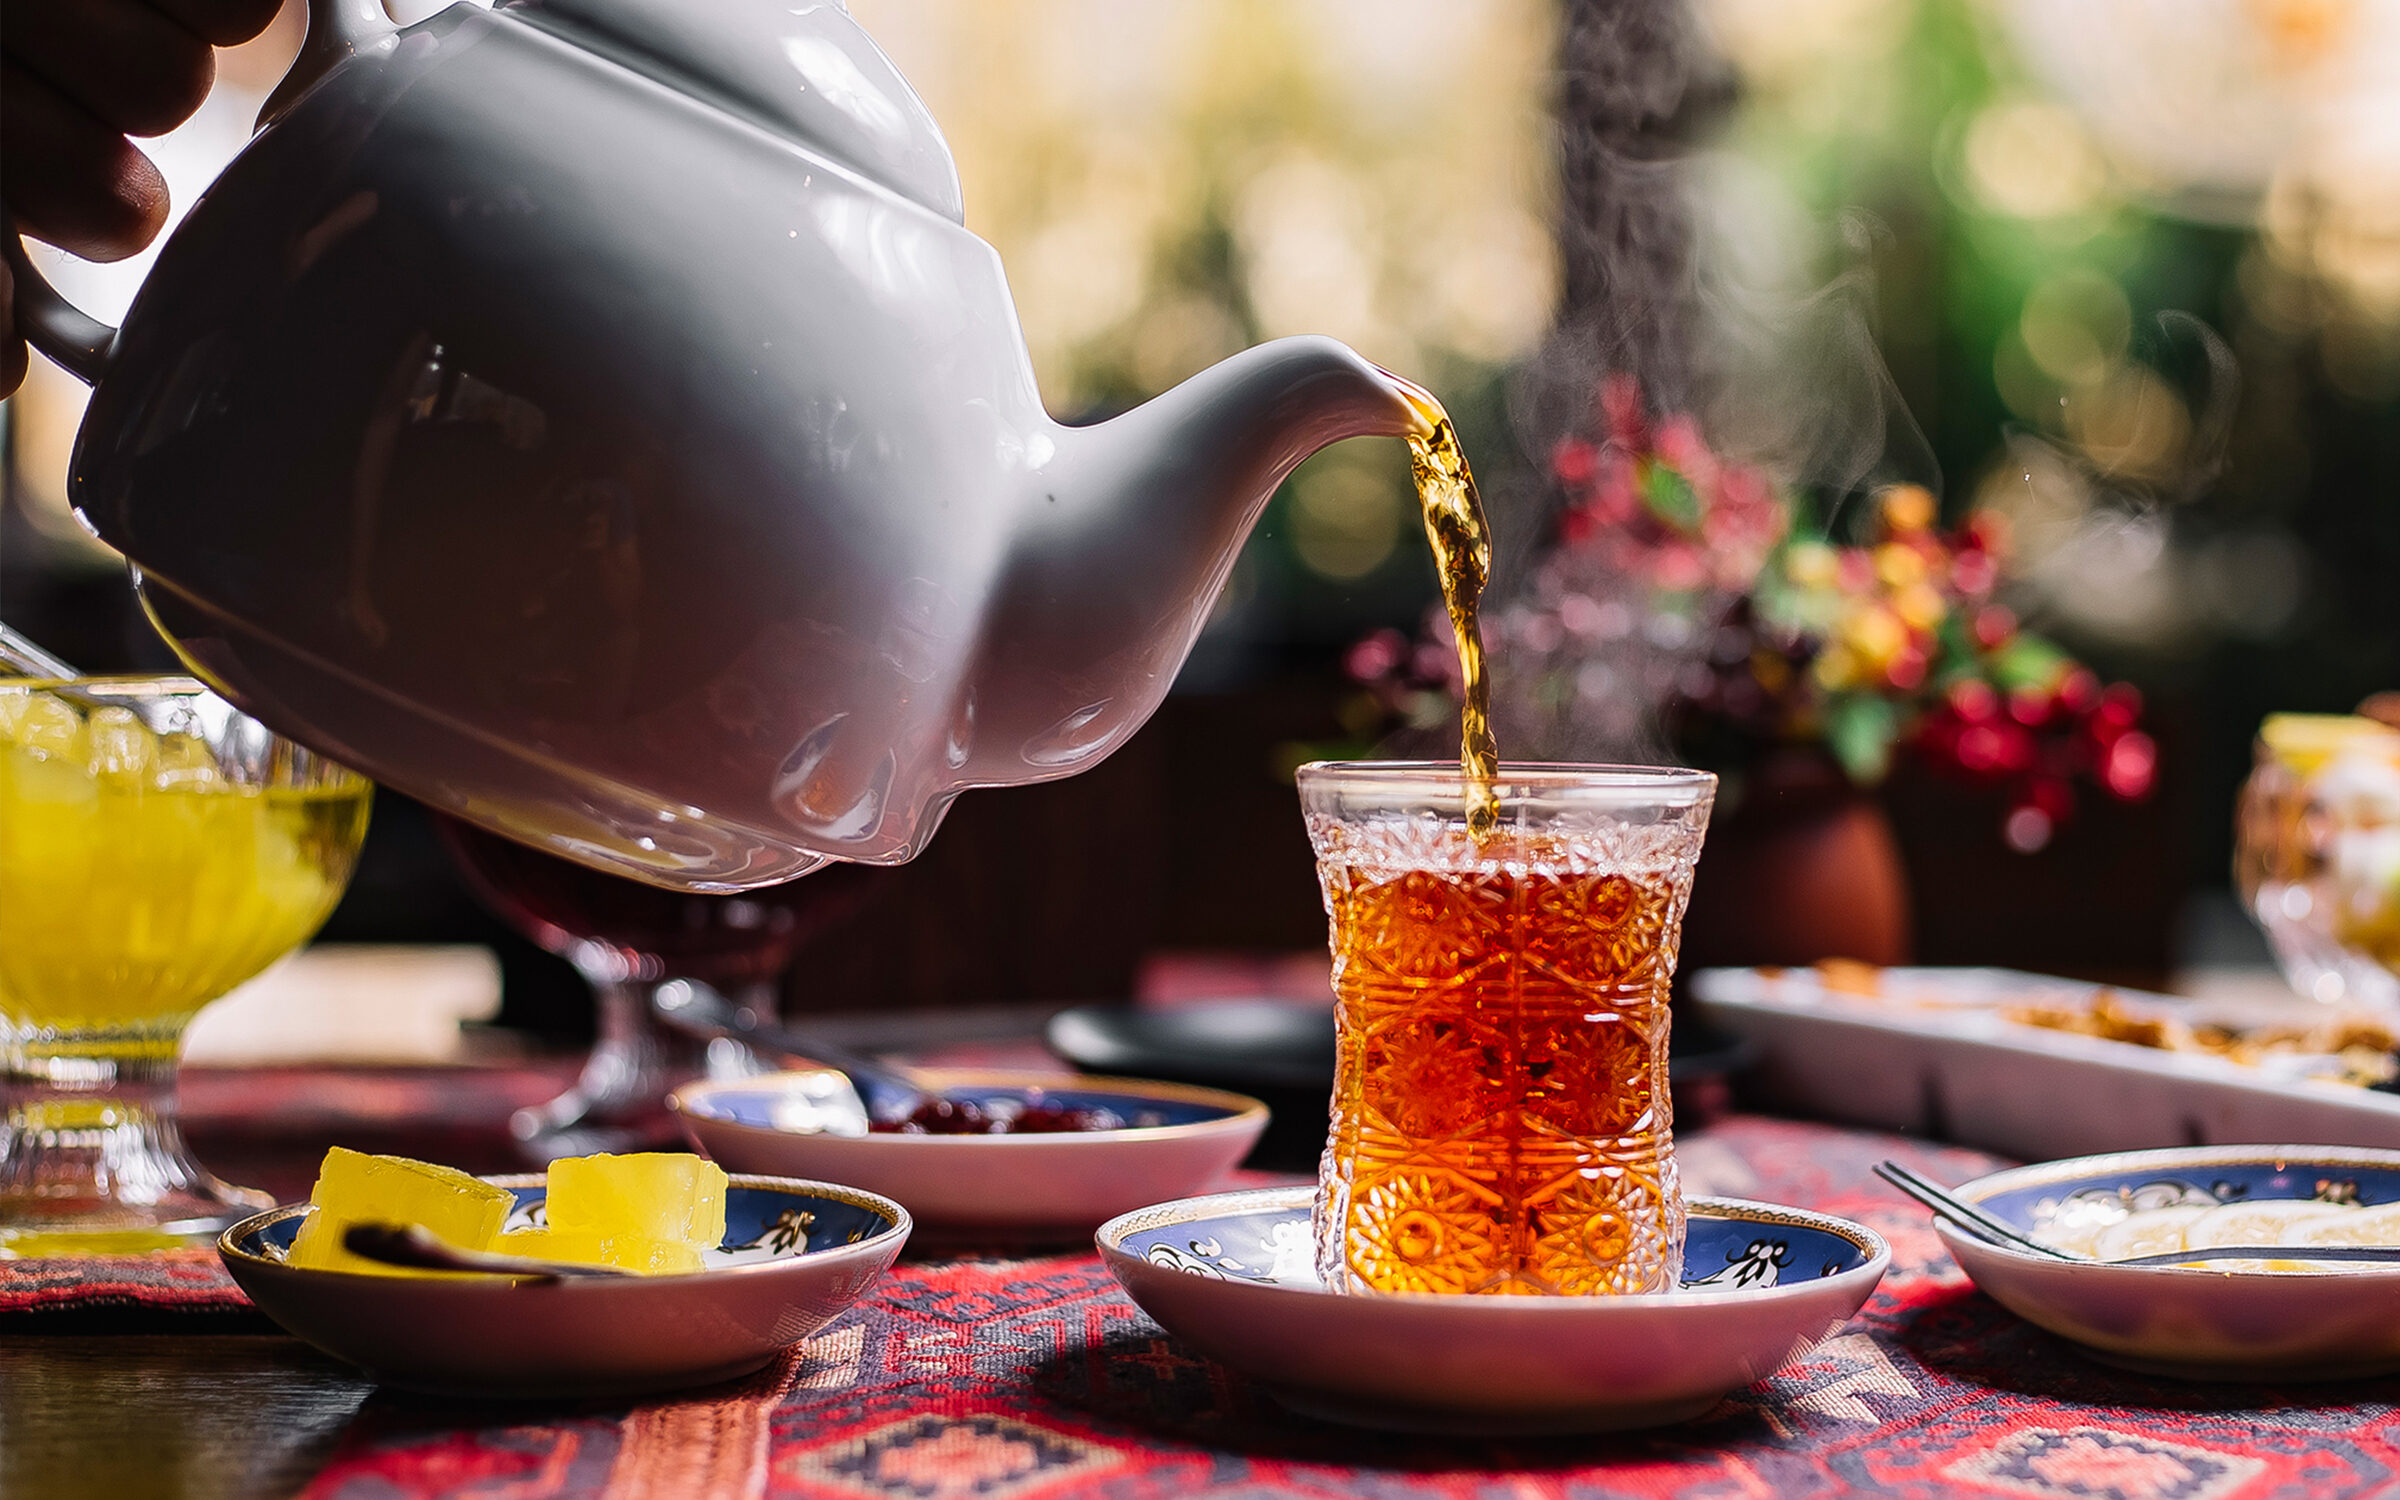 5 Key Reasons to Work at The Teahouse